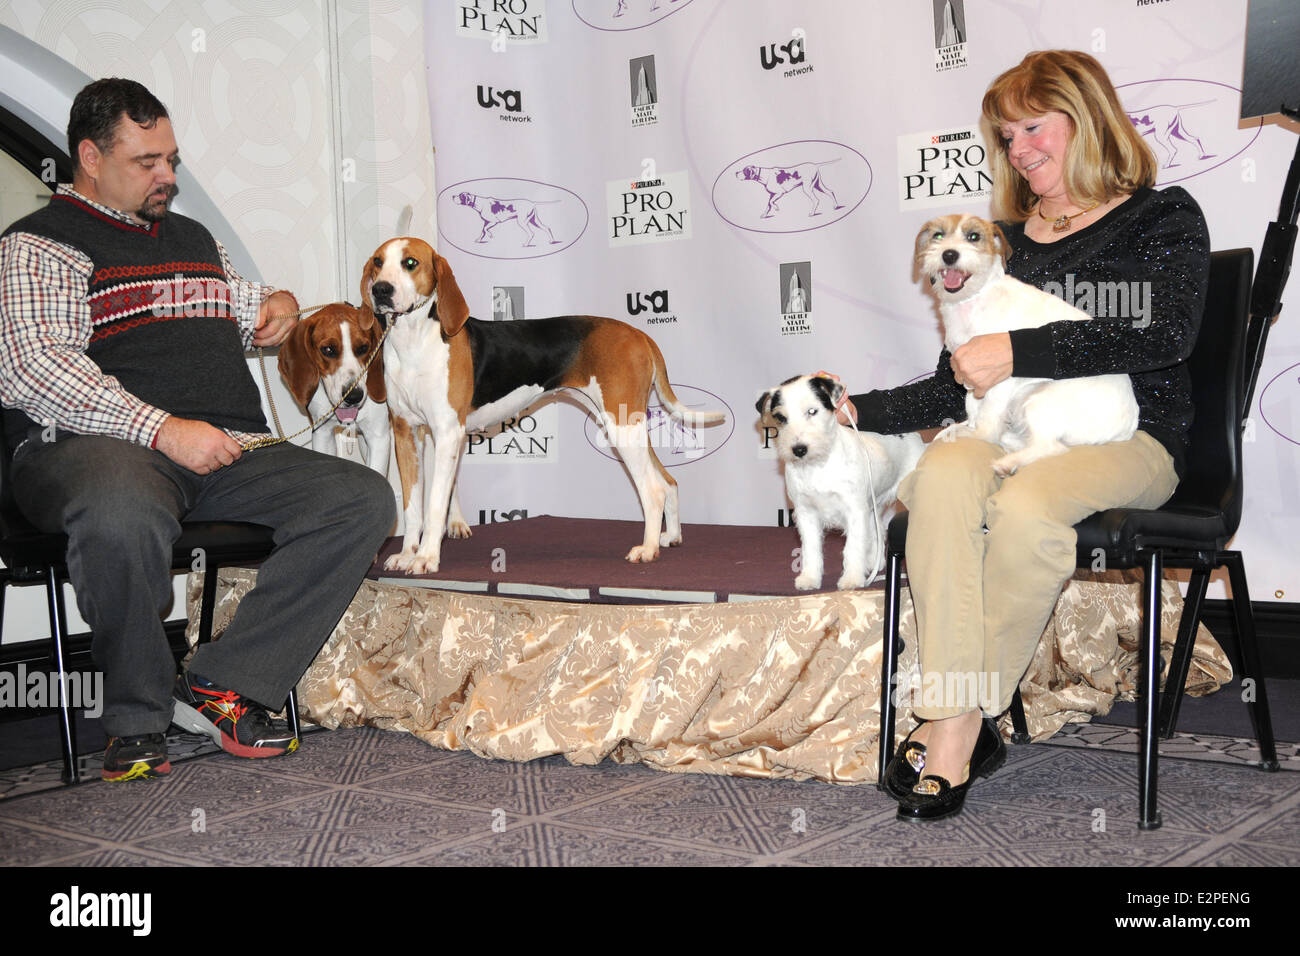 The Westminster Kennel Club 137th Annual Dog Show - Press Conference at Affinia  Featuring: Meg,Tank both Treewalking Stock Photo